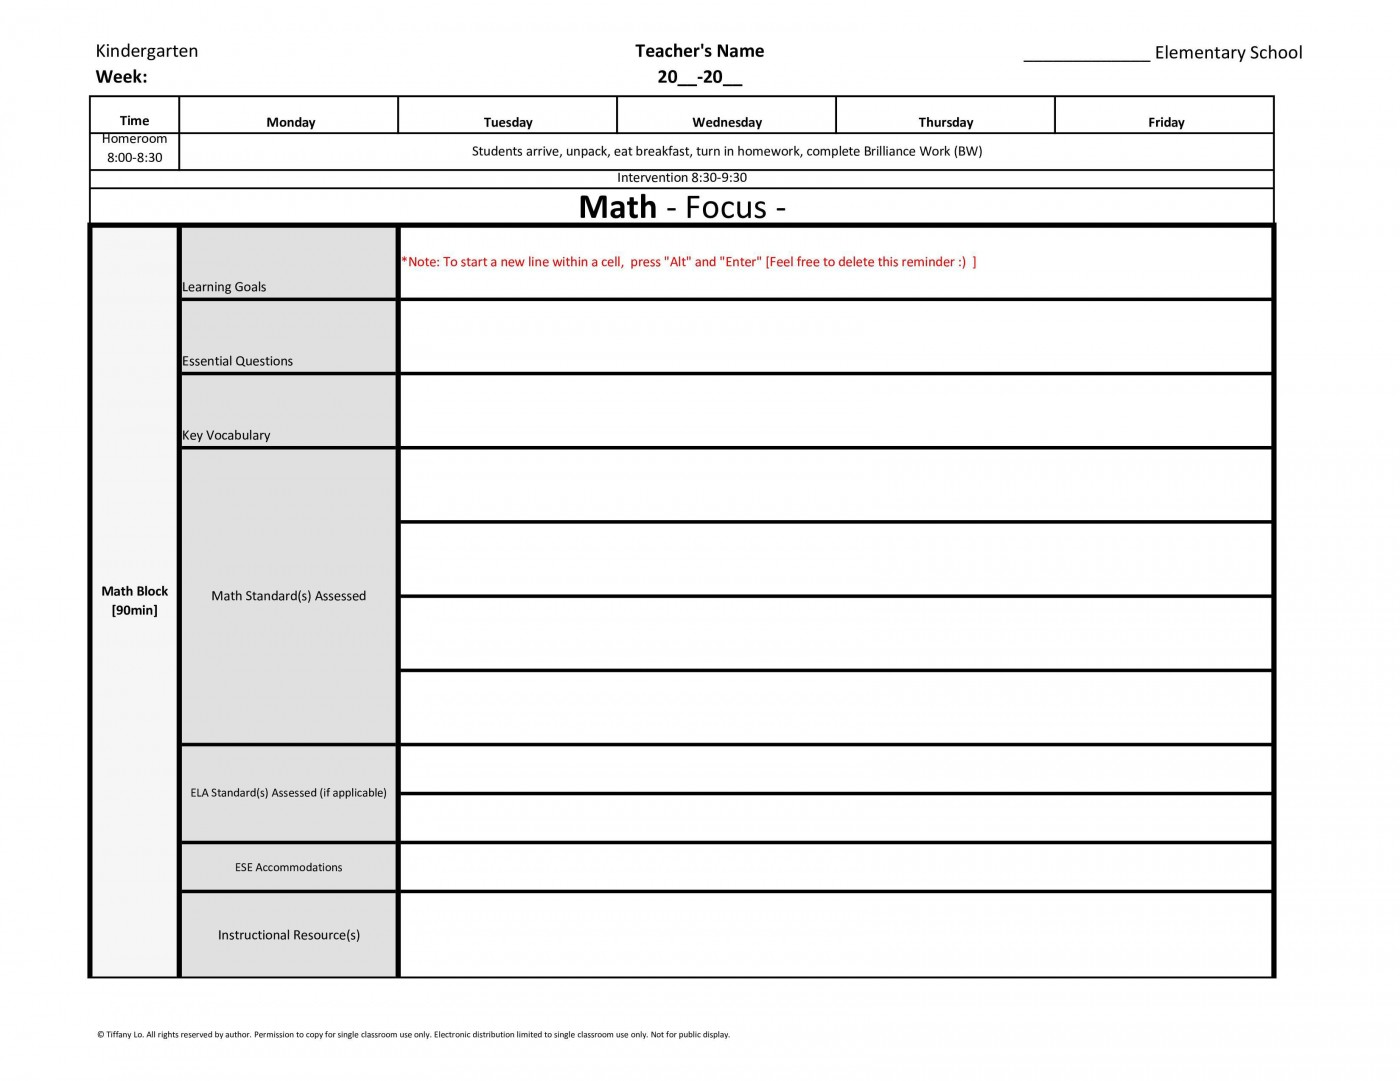 004 Frightening Weekly Lesson Plan Template Inspiration  Blank Free High School Danielson Google Doc1400